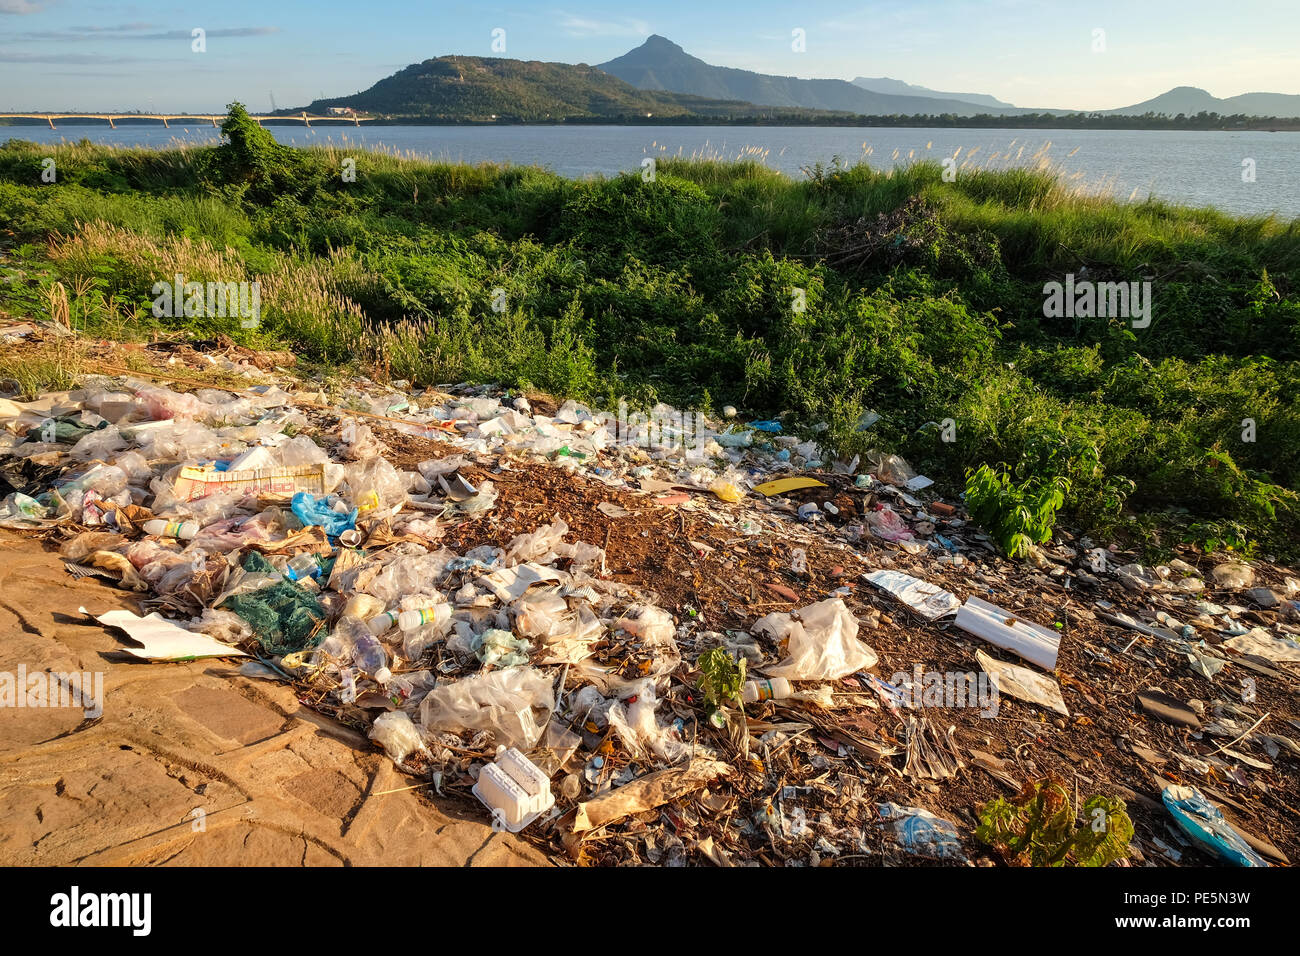 Plastic litter on the banks of the Mekong River in Pakse, Laos - Stock Image